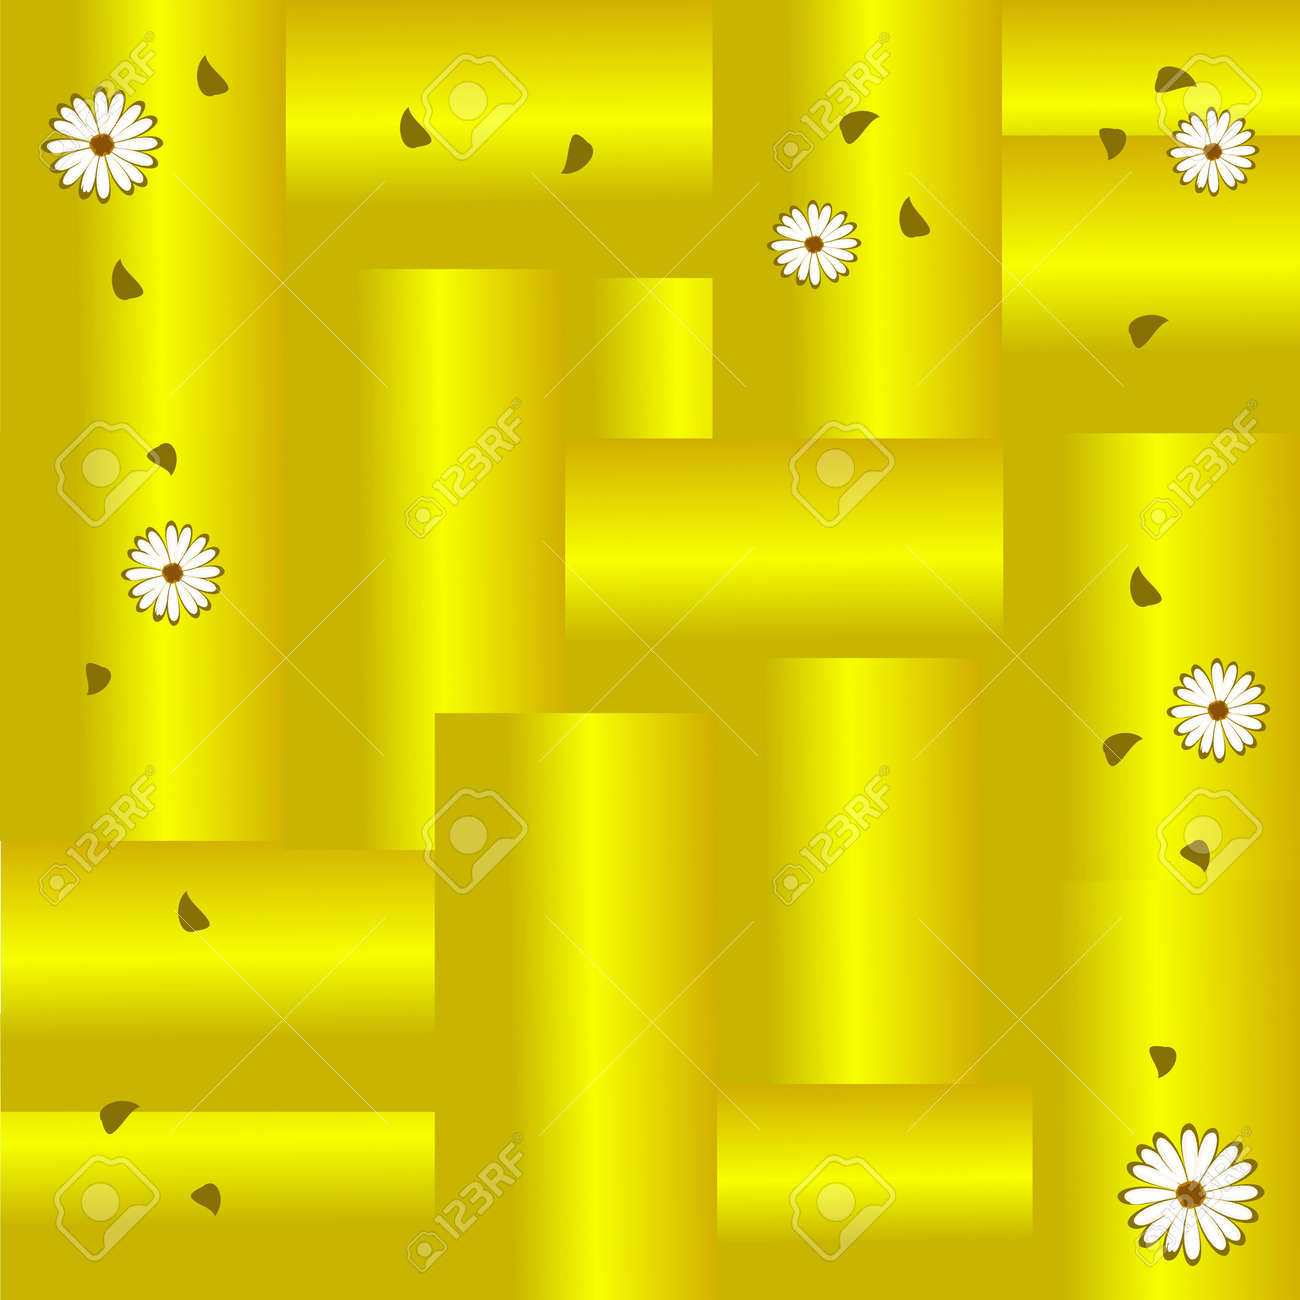 1a61821cf3fc Gold Background With Leaves And Daisies Royalty Free Cliparts ...